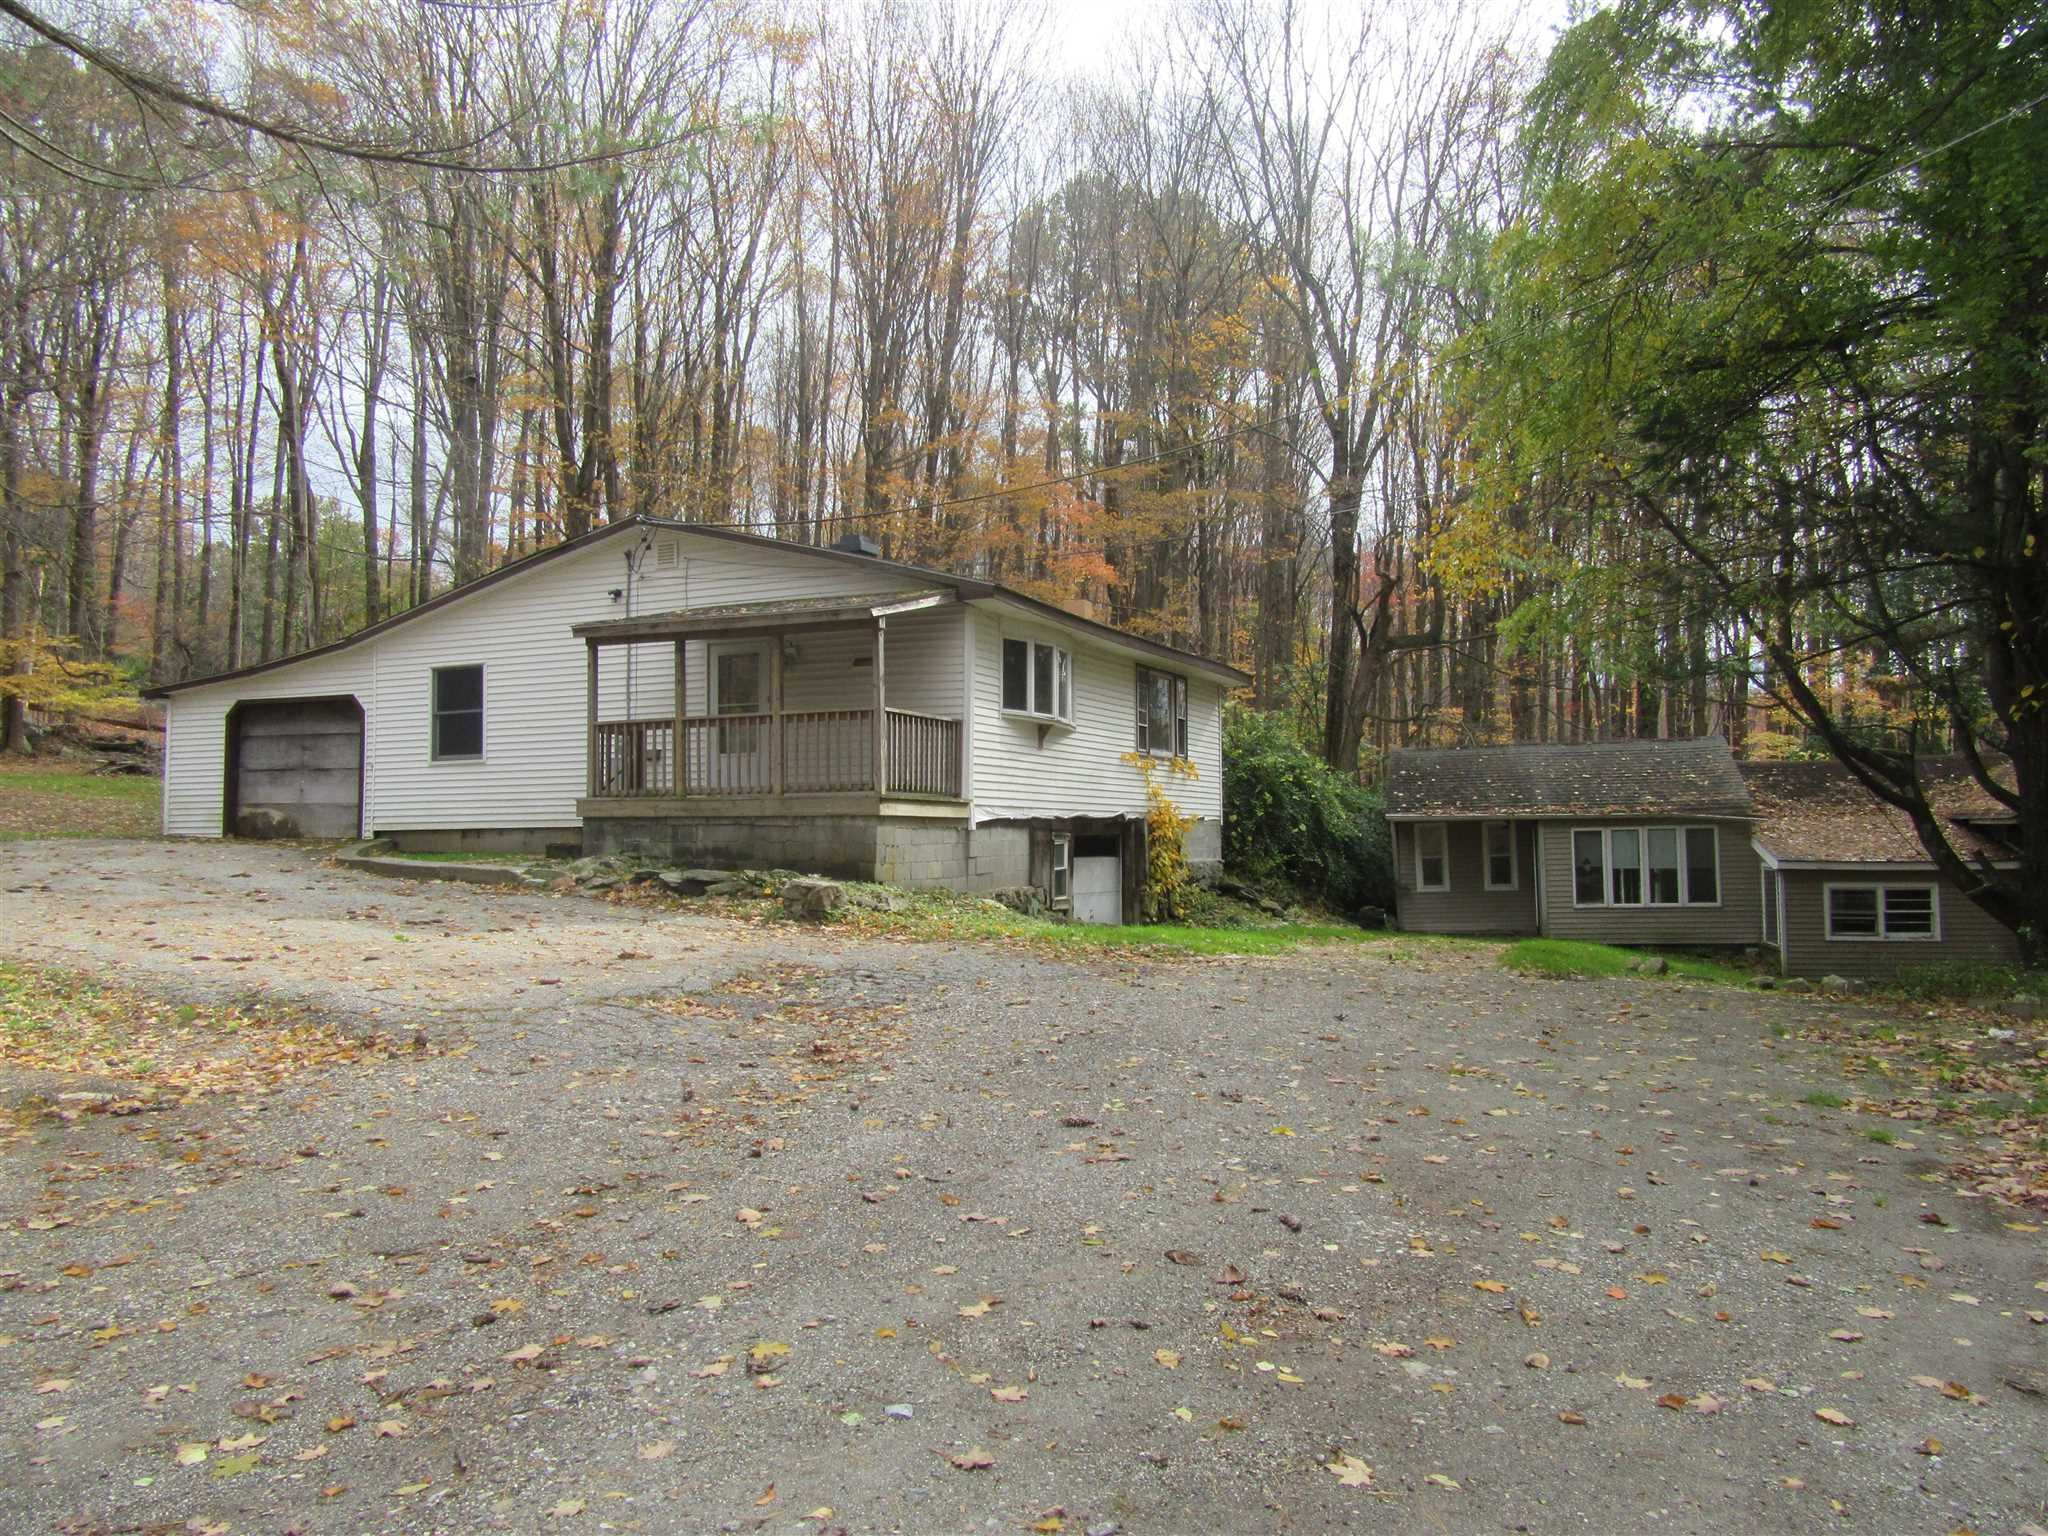 Single Family Home for Sale at 15 MILLER Road 15 MILLER Road Pawling, New York 12564 United States